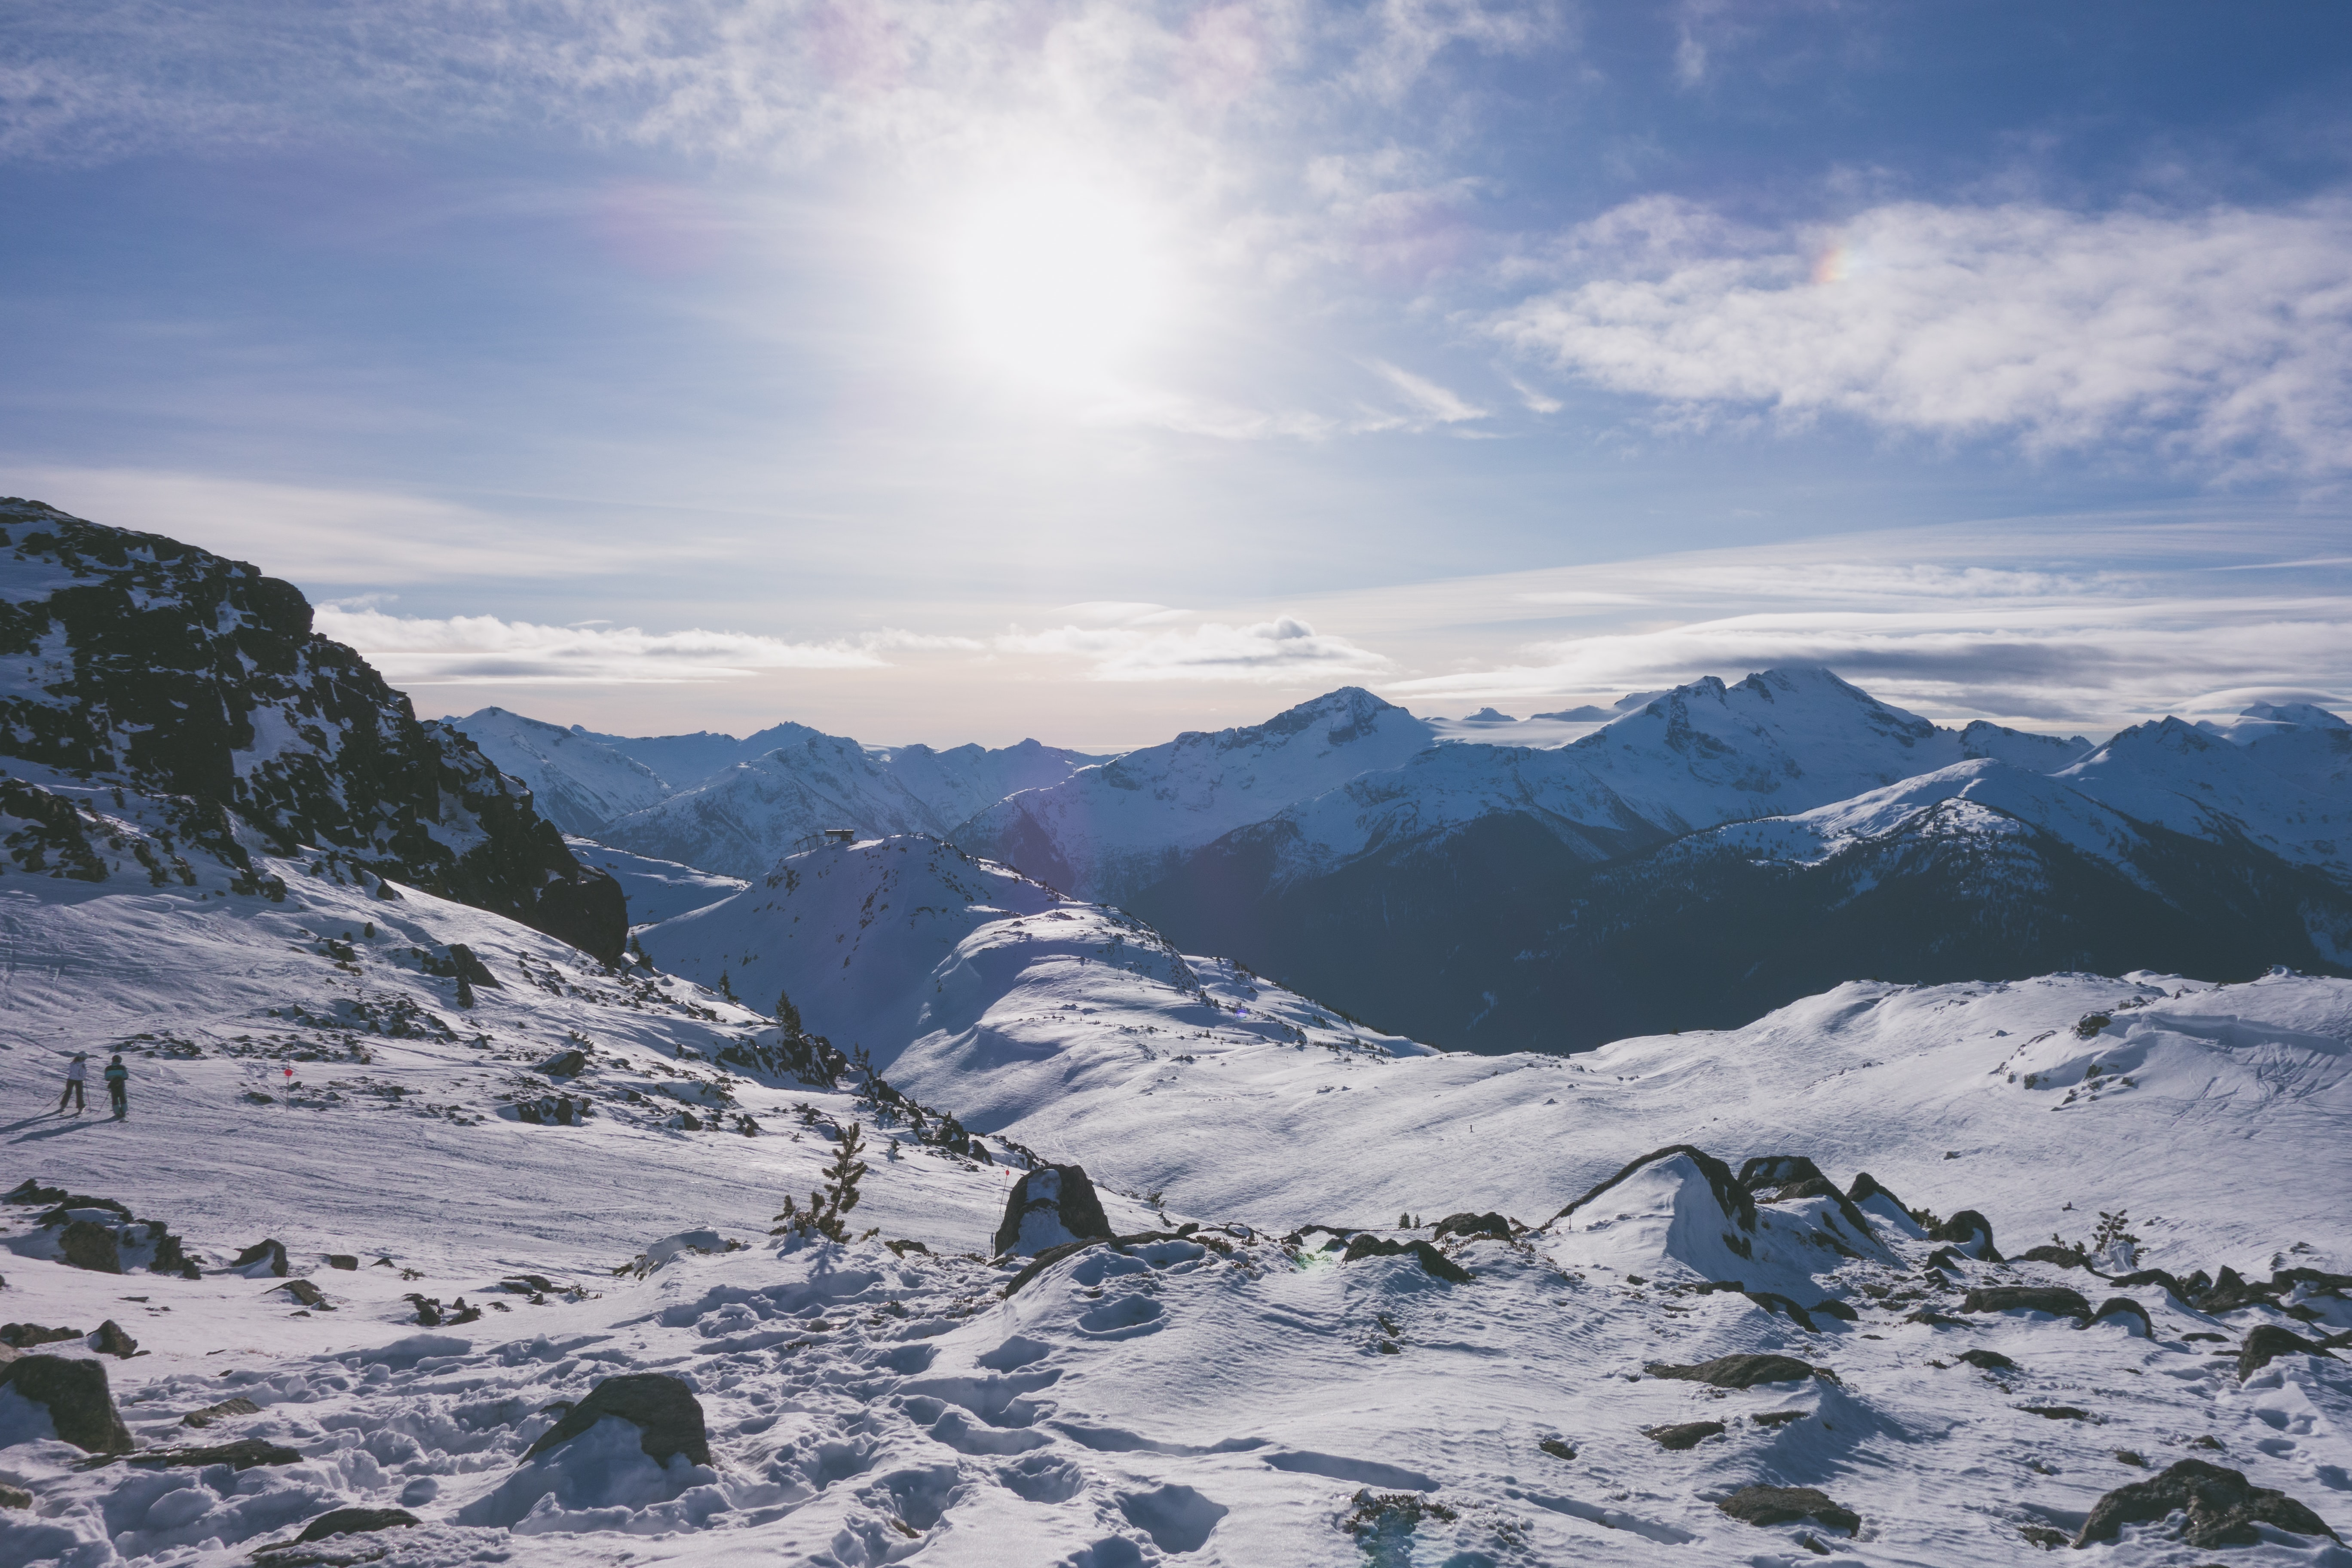 group of people standing on top snowy mountain during daytime